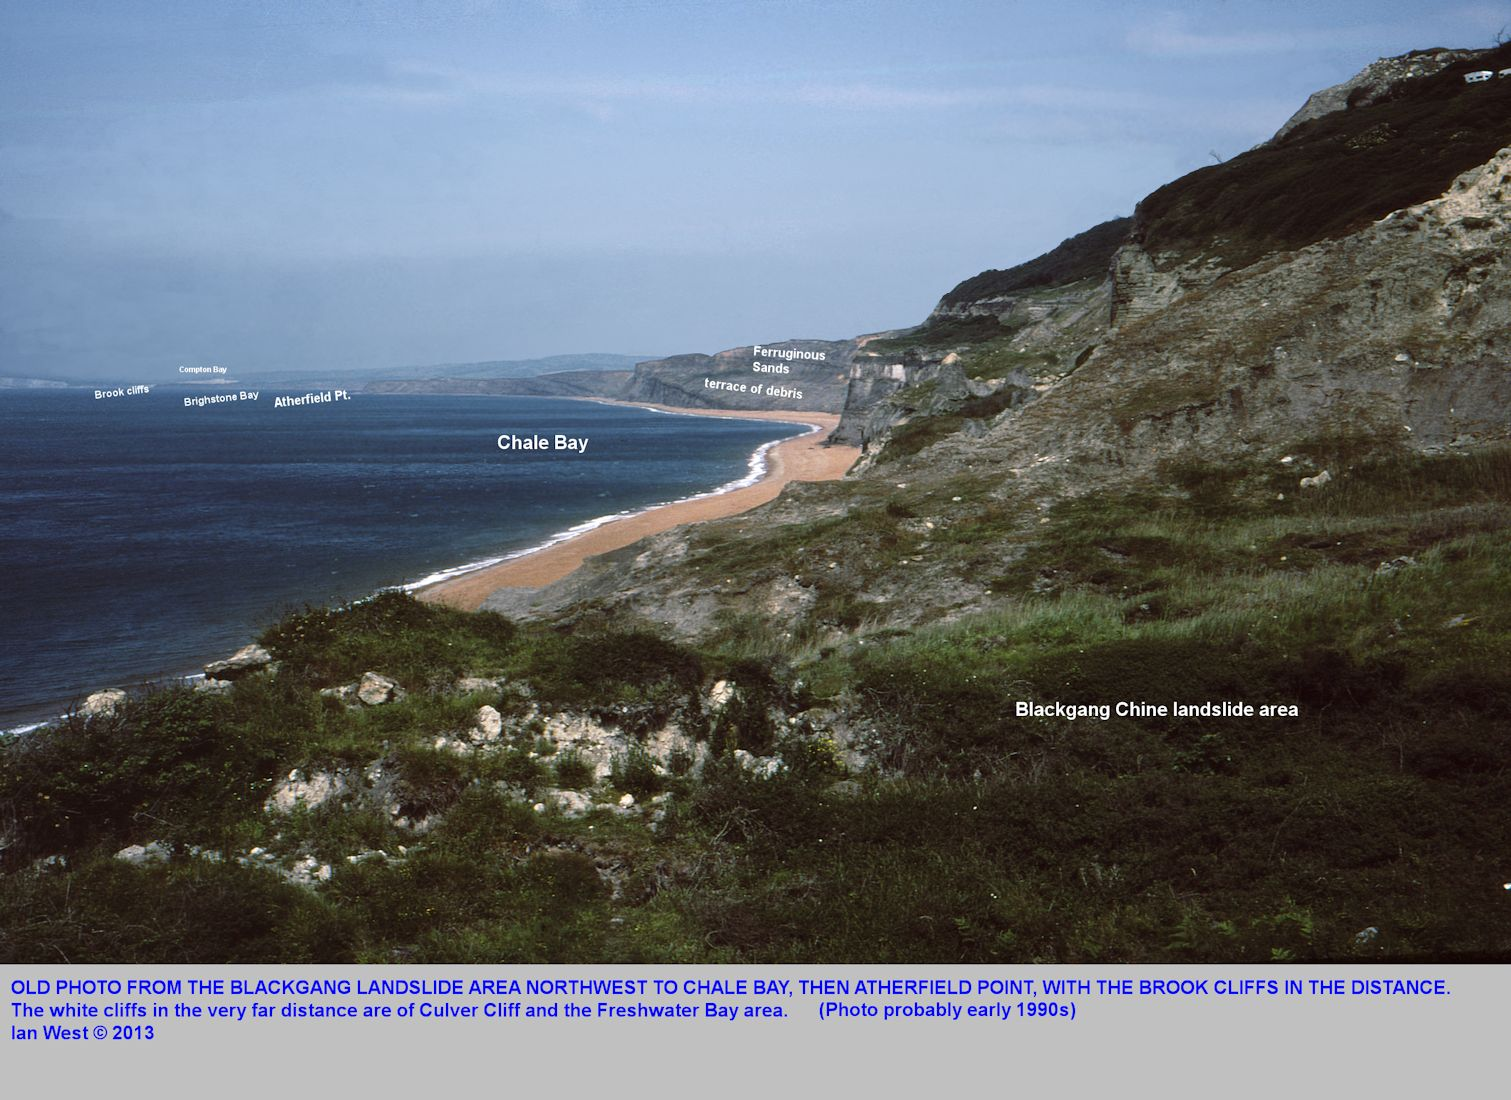 From Blackgang Chine landslide, a view of Chale Bay, Atherfield Point and the coast on to Brook, Isle of Wight